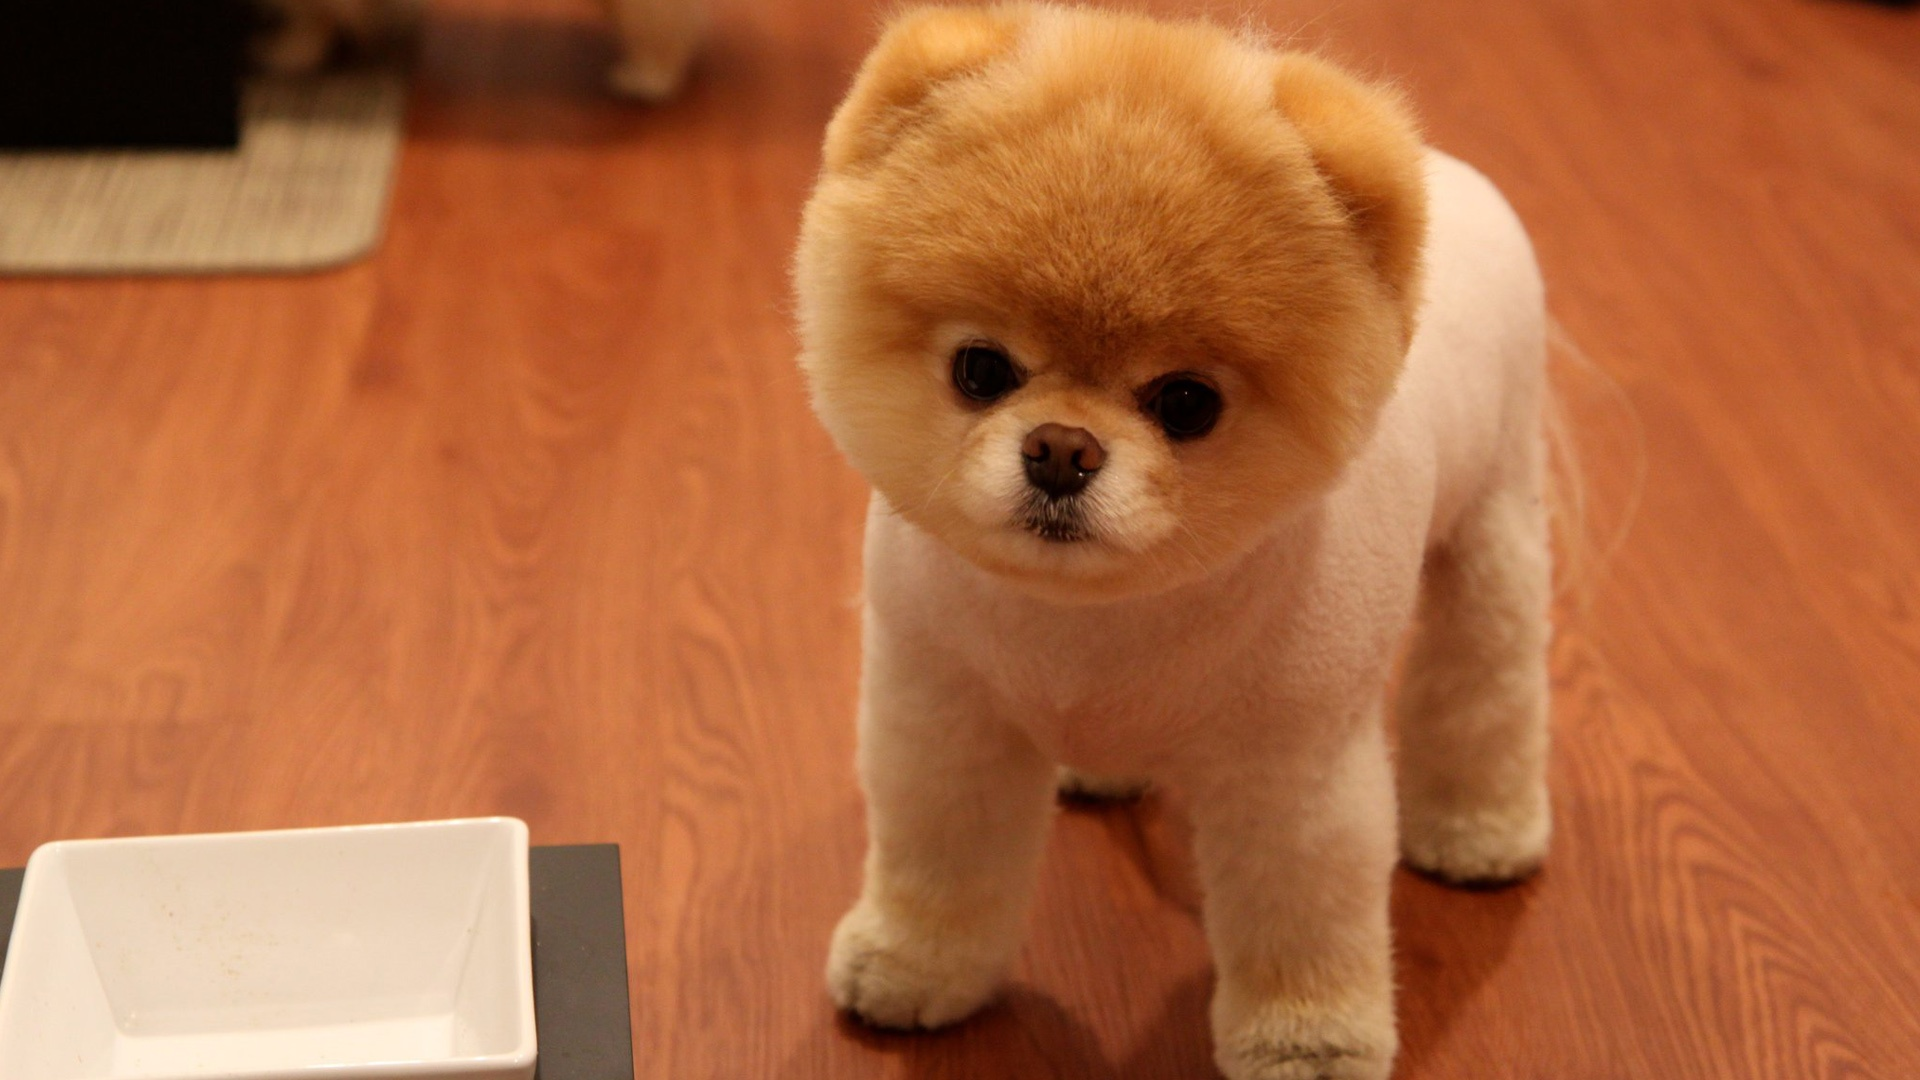 Cute Pomeranian Dog Wallpapers In Jpg Format For Free Download